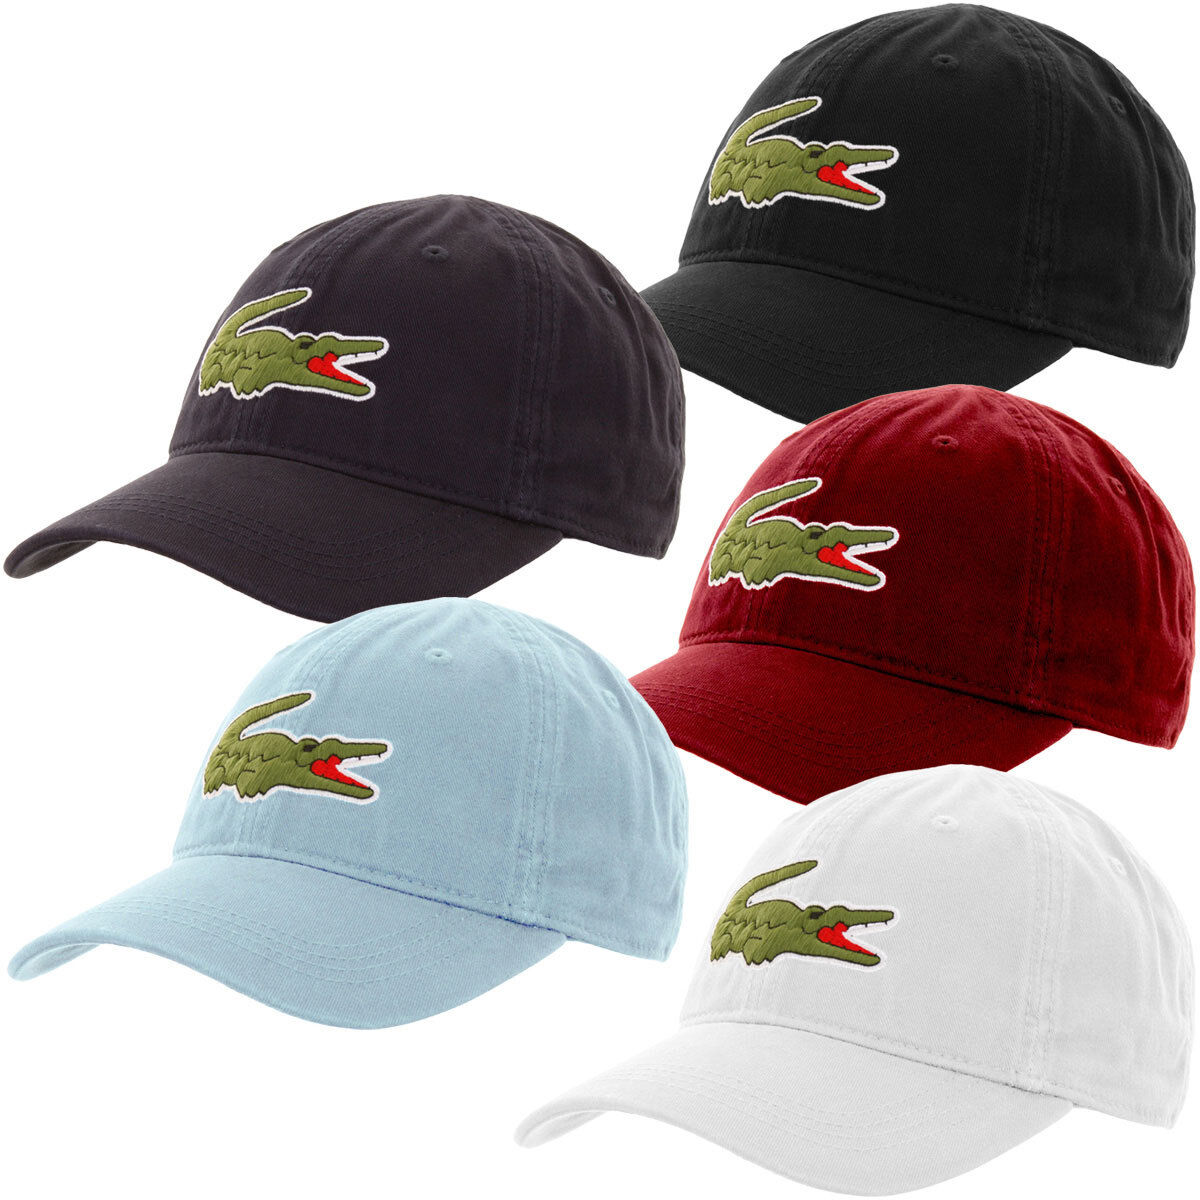 New Lacoste Men s Big Croc Gabardine Cap Dadhats - One Size hat RK8217-51  фото b687c57a4195